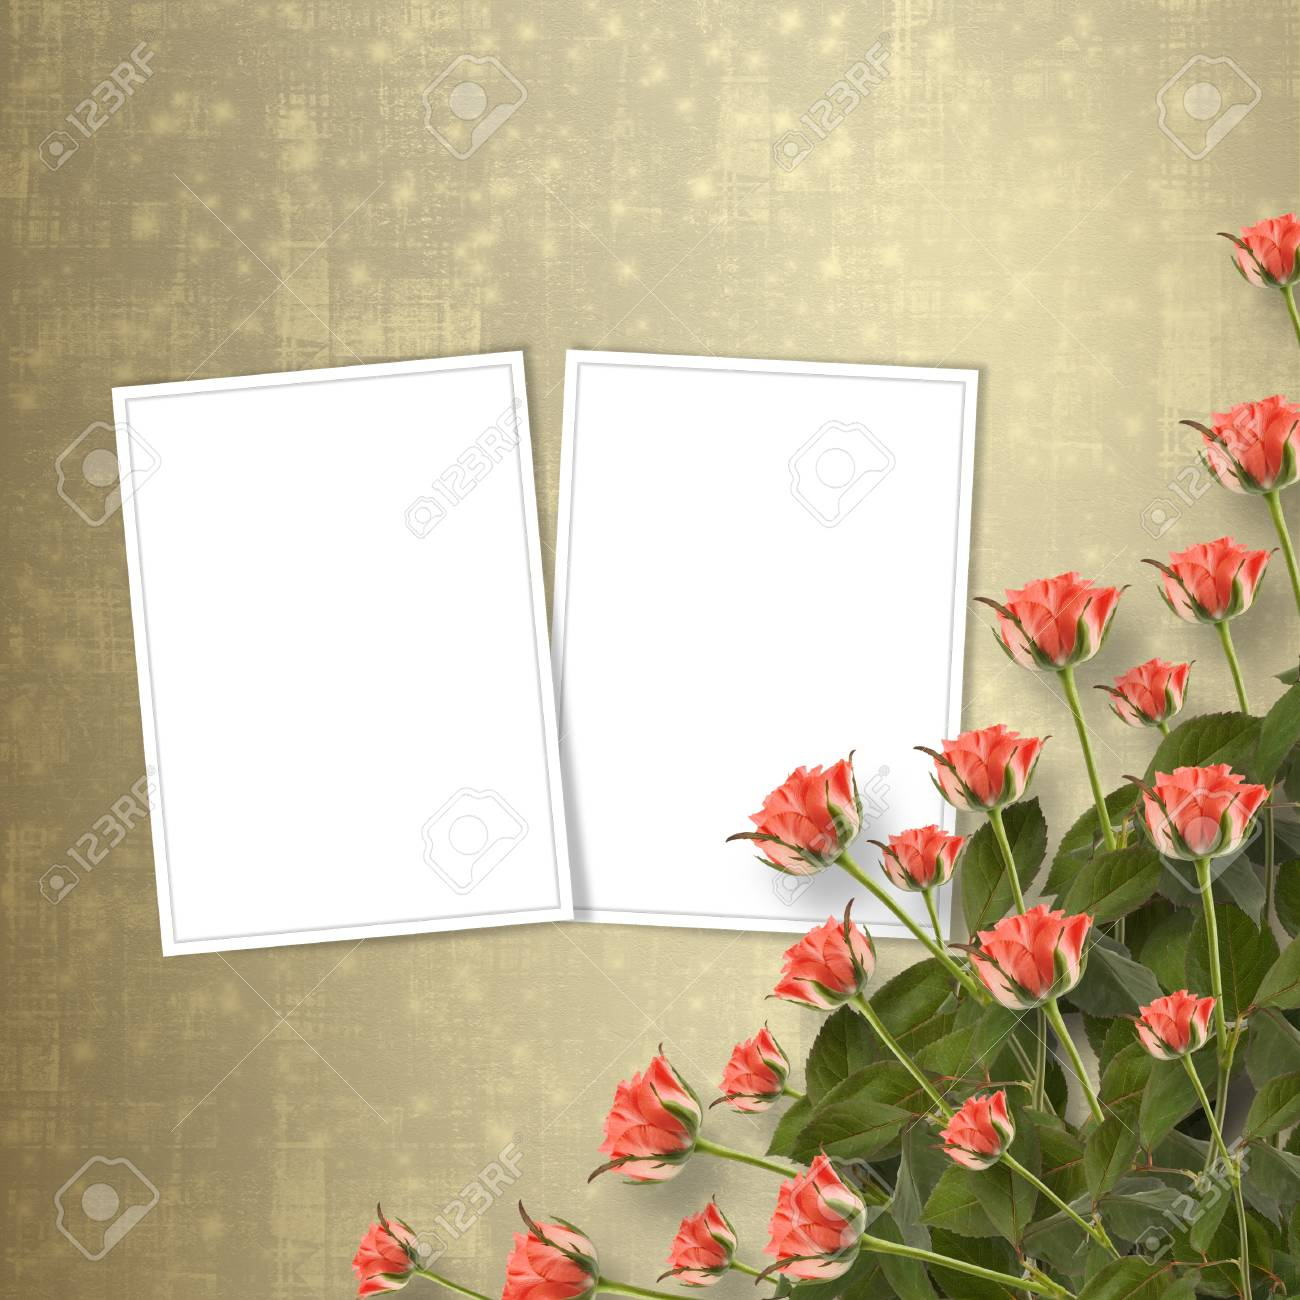 Card for congratulation or invitation with bunch of flowers Stock Photo - 12313938